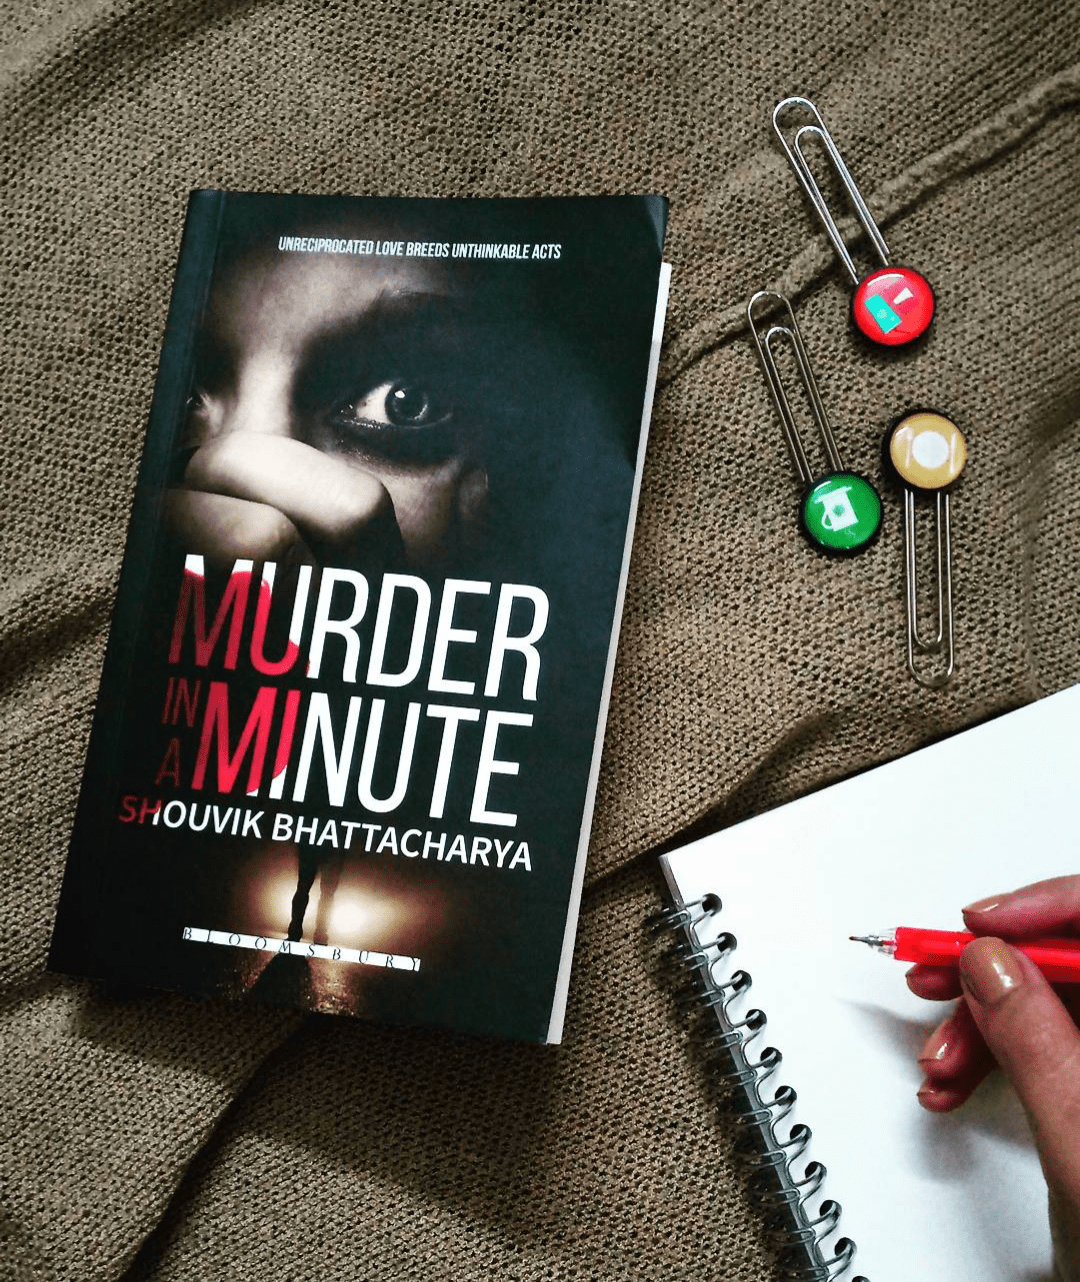 Murder In A Minute by Shouvik Bhattacharya